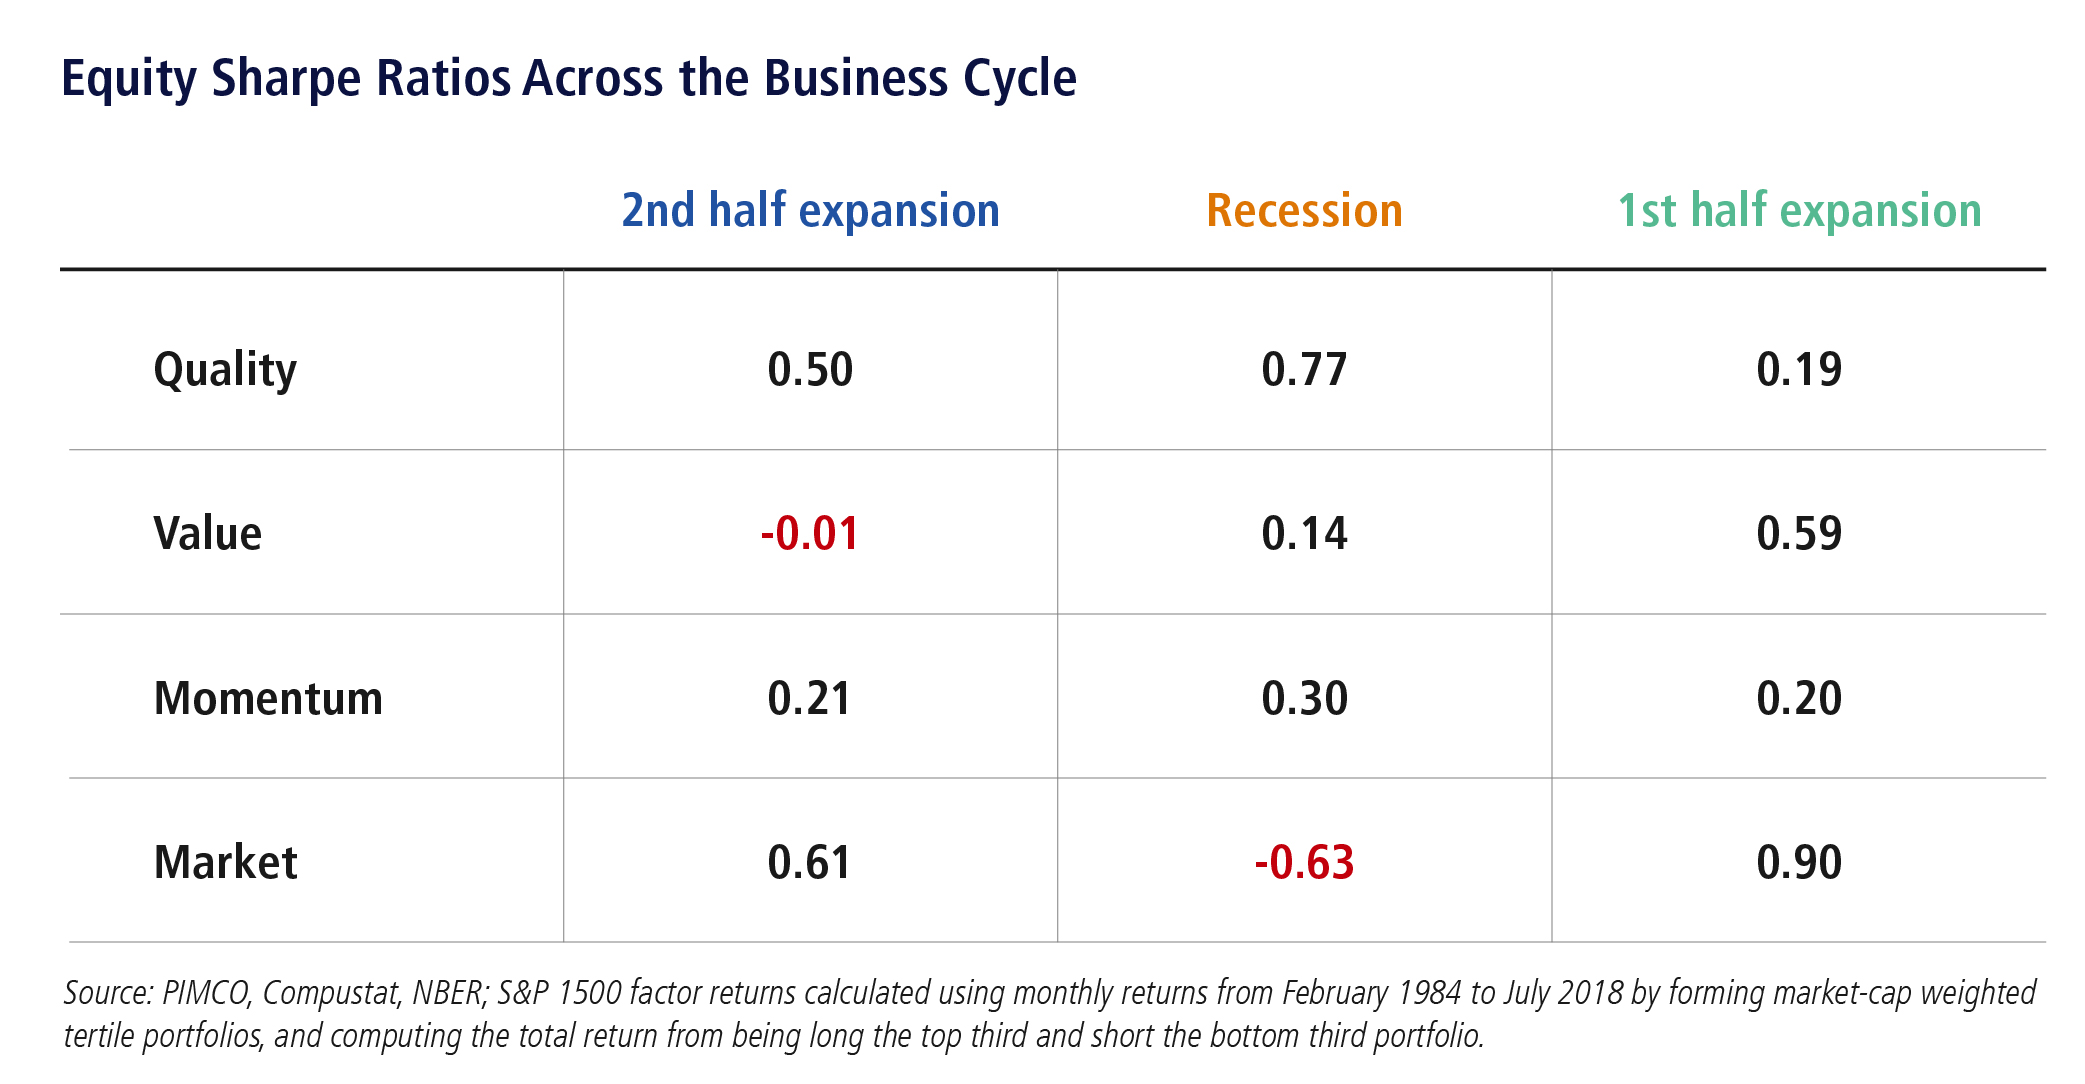 Equity sharpe ratios across the business cycle